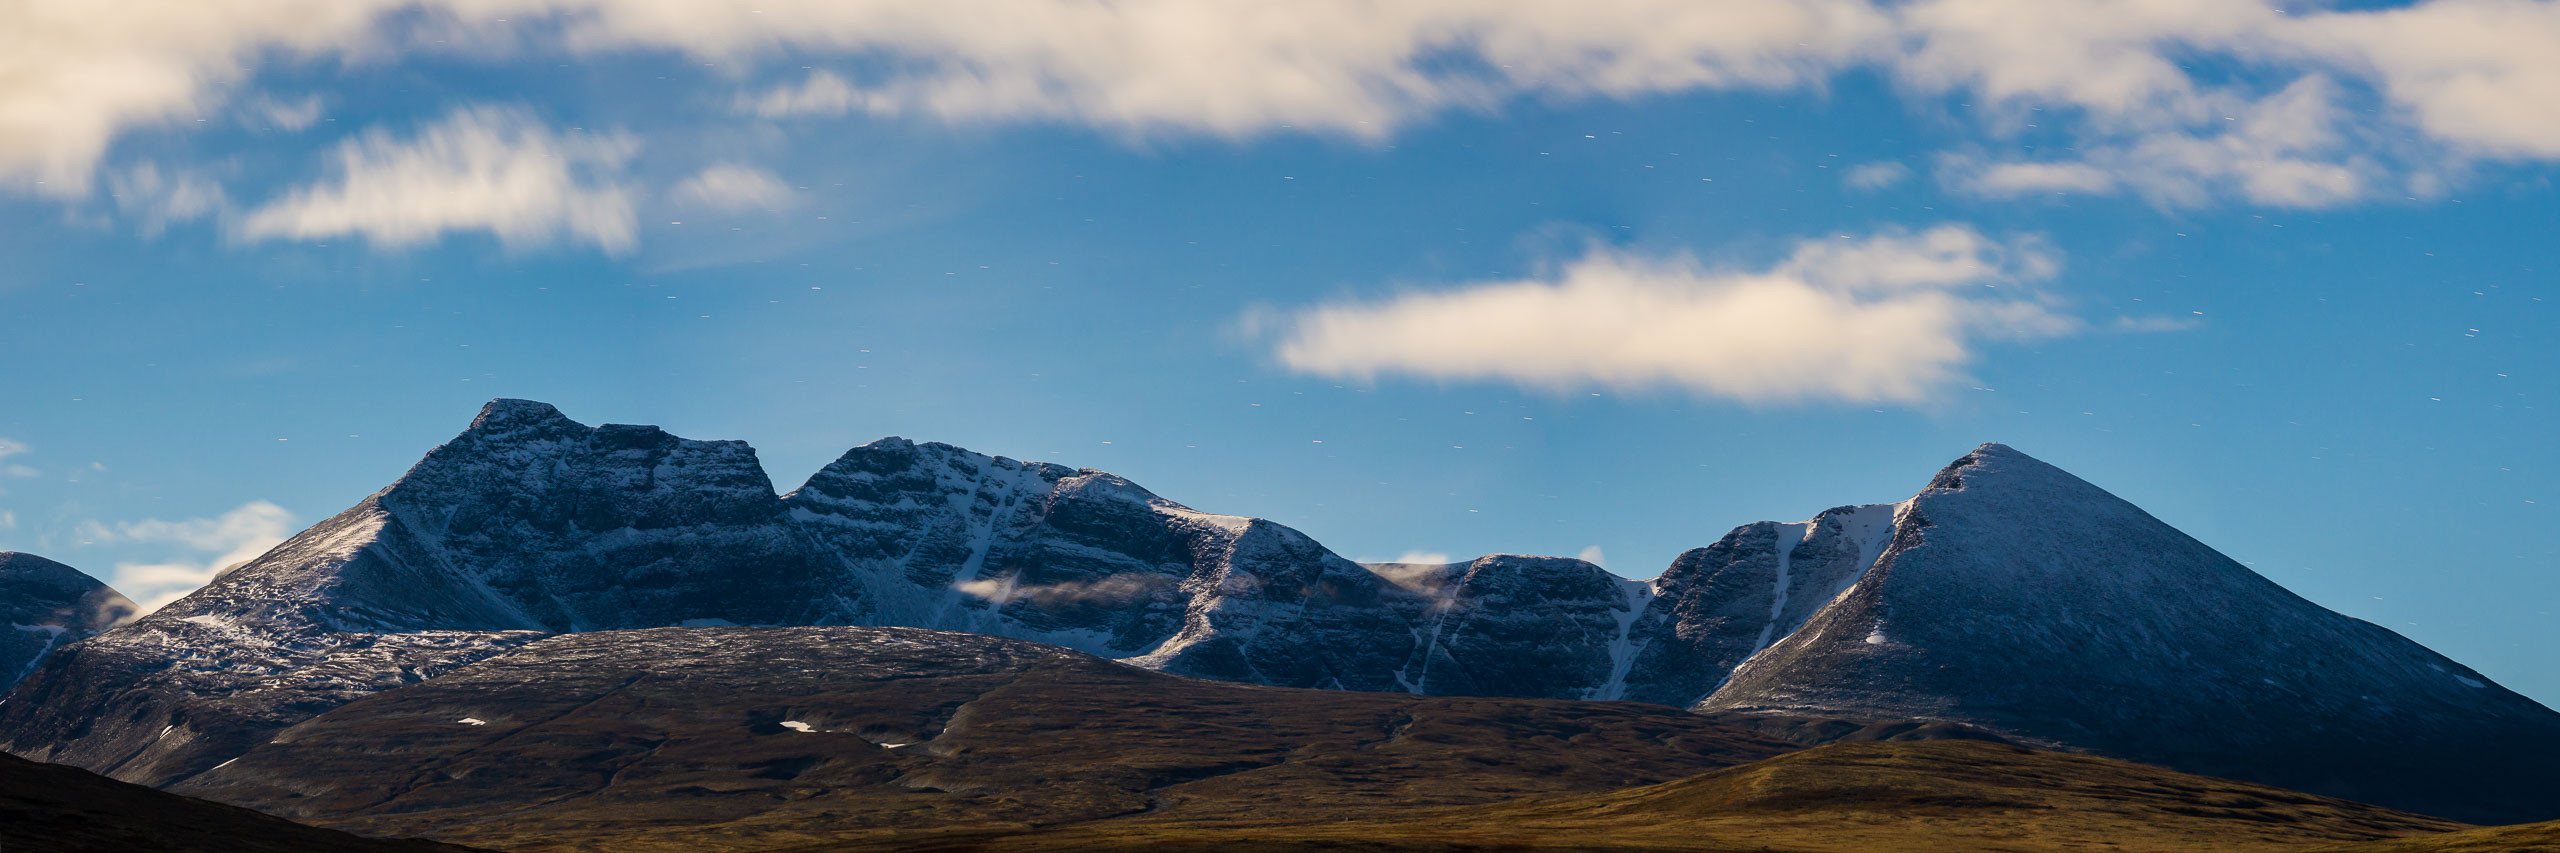 Rondane mountains